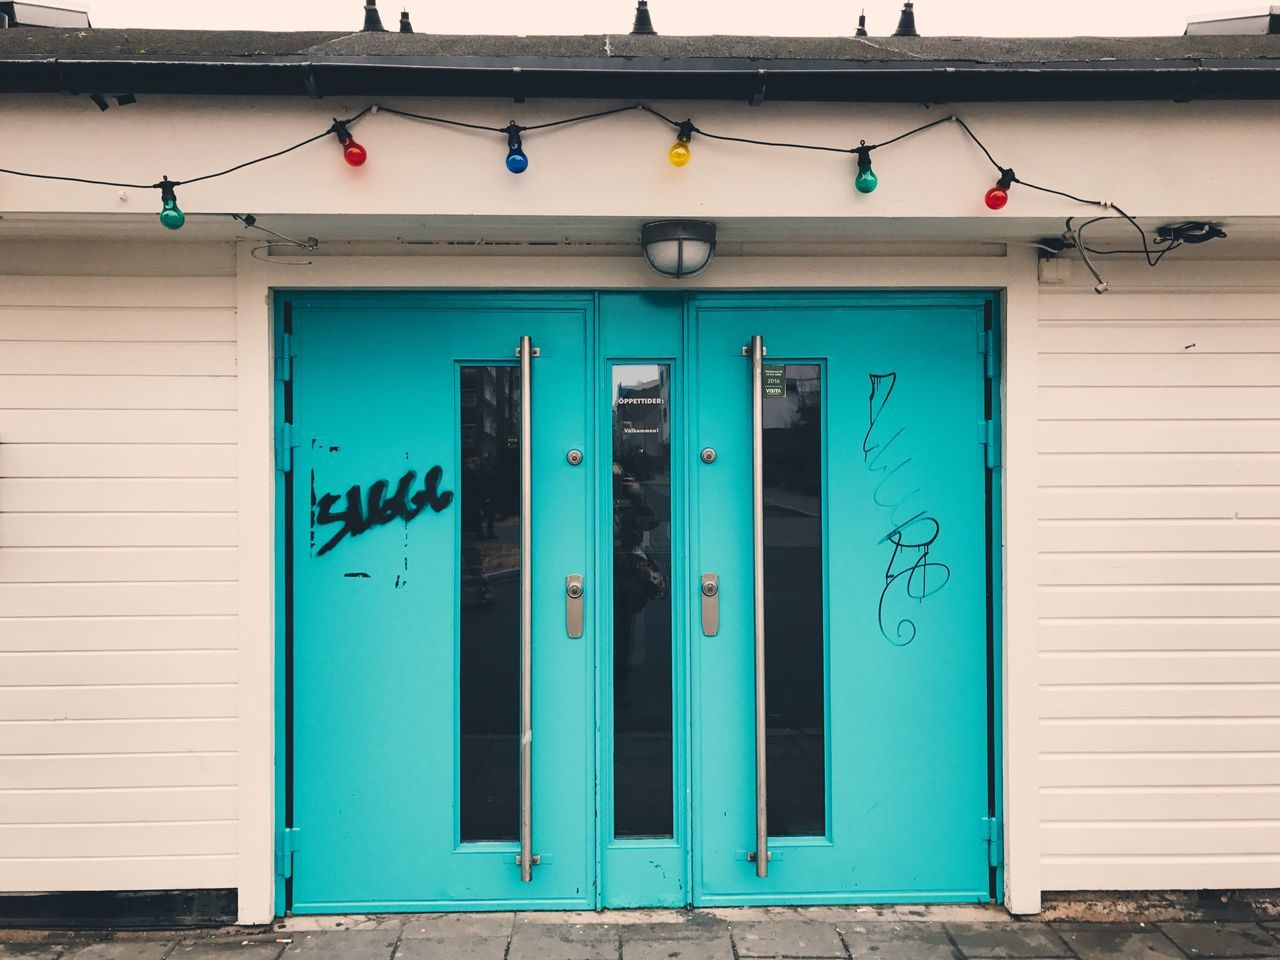 Door Building Exterior Built Structure Closed Blue Architecture Entrance Front Door Outdoors Day No People Entry Colorful Turquoise Closed Door Doors Background Colored Lights Entrance Wall - Building Feature Spray Paint Lights Electric Light Hanging